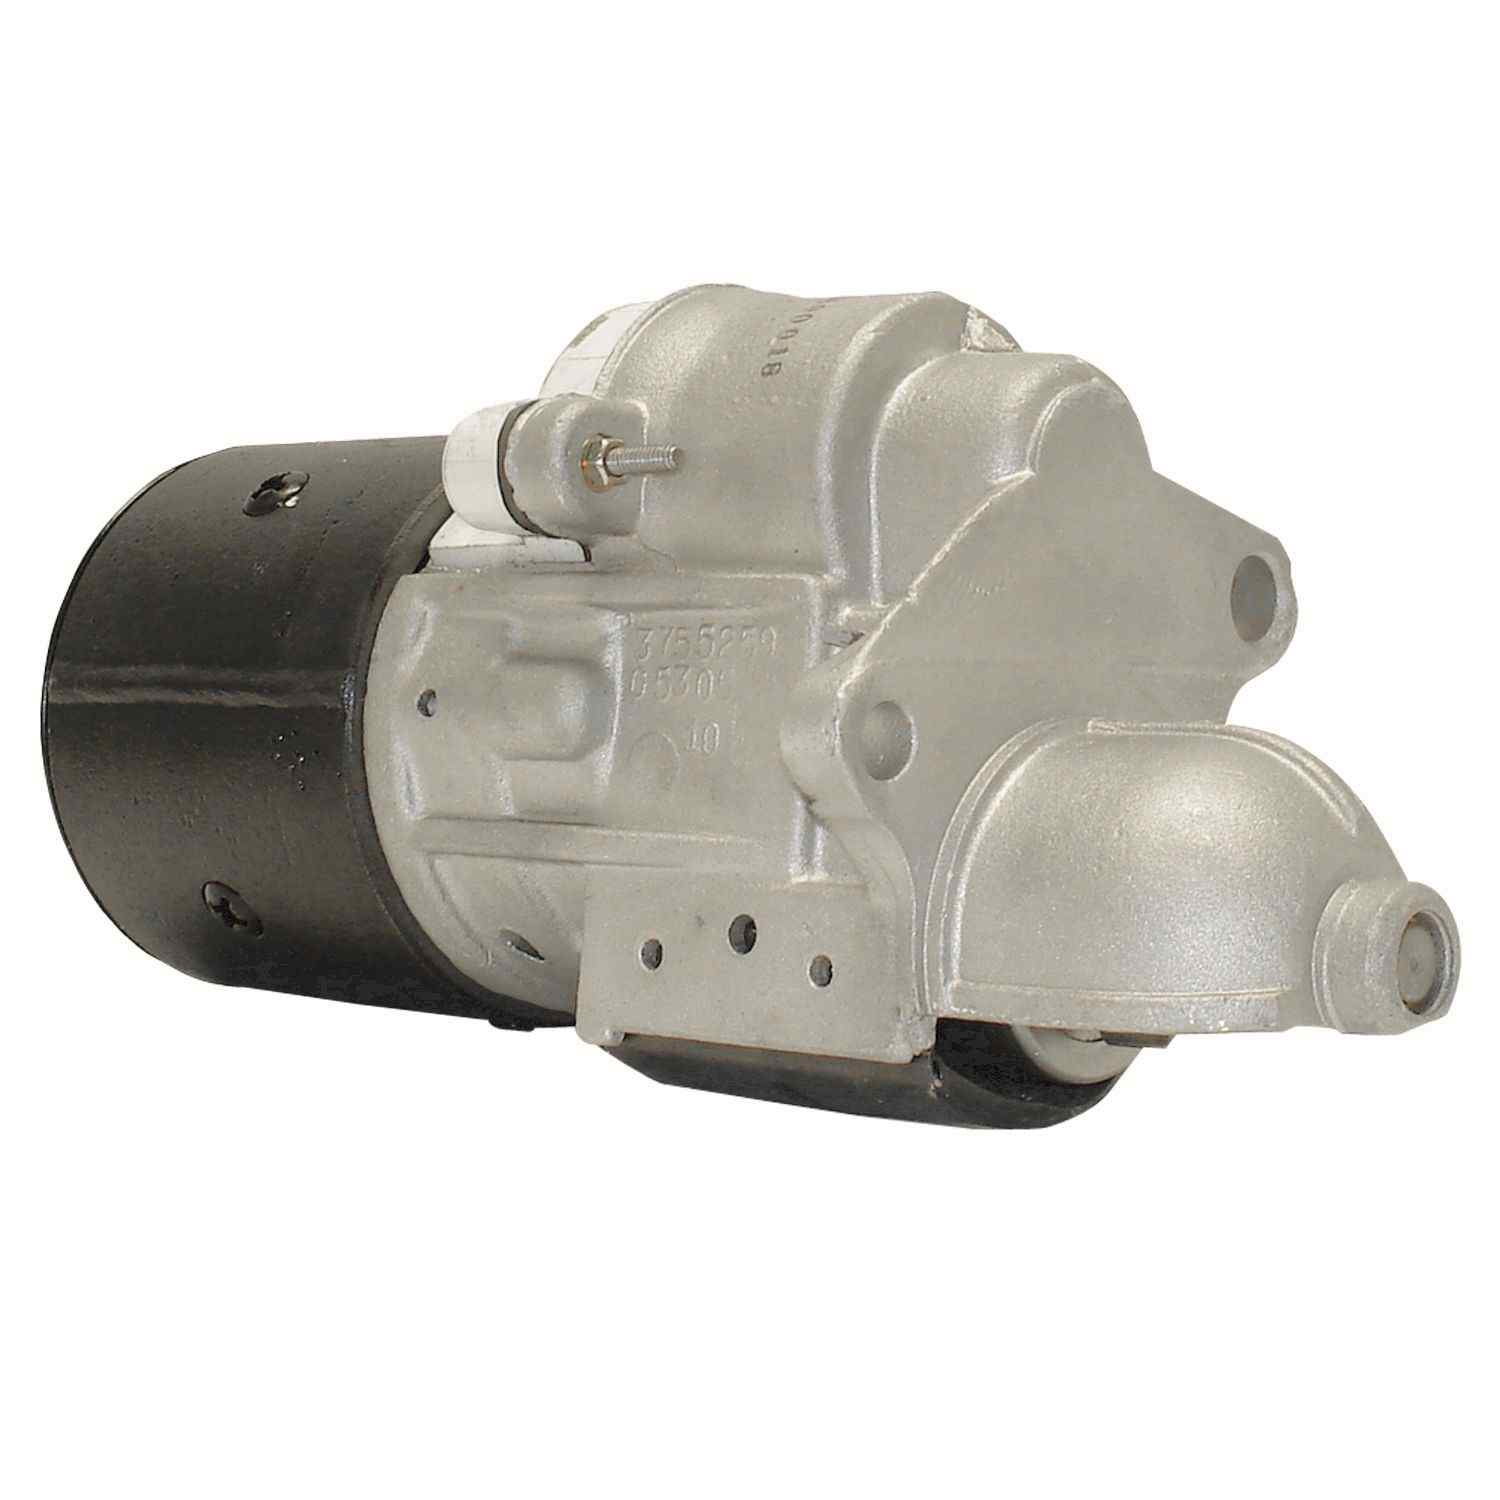 ACDELCO GOLD/PROFESSIONAL - Reman Starter Motor - DCC 336-1044